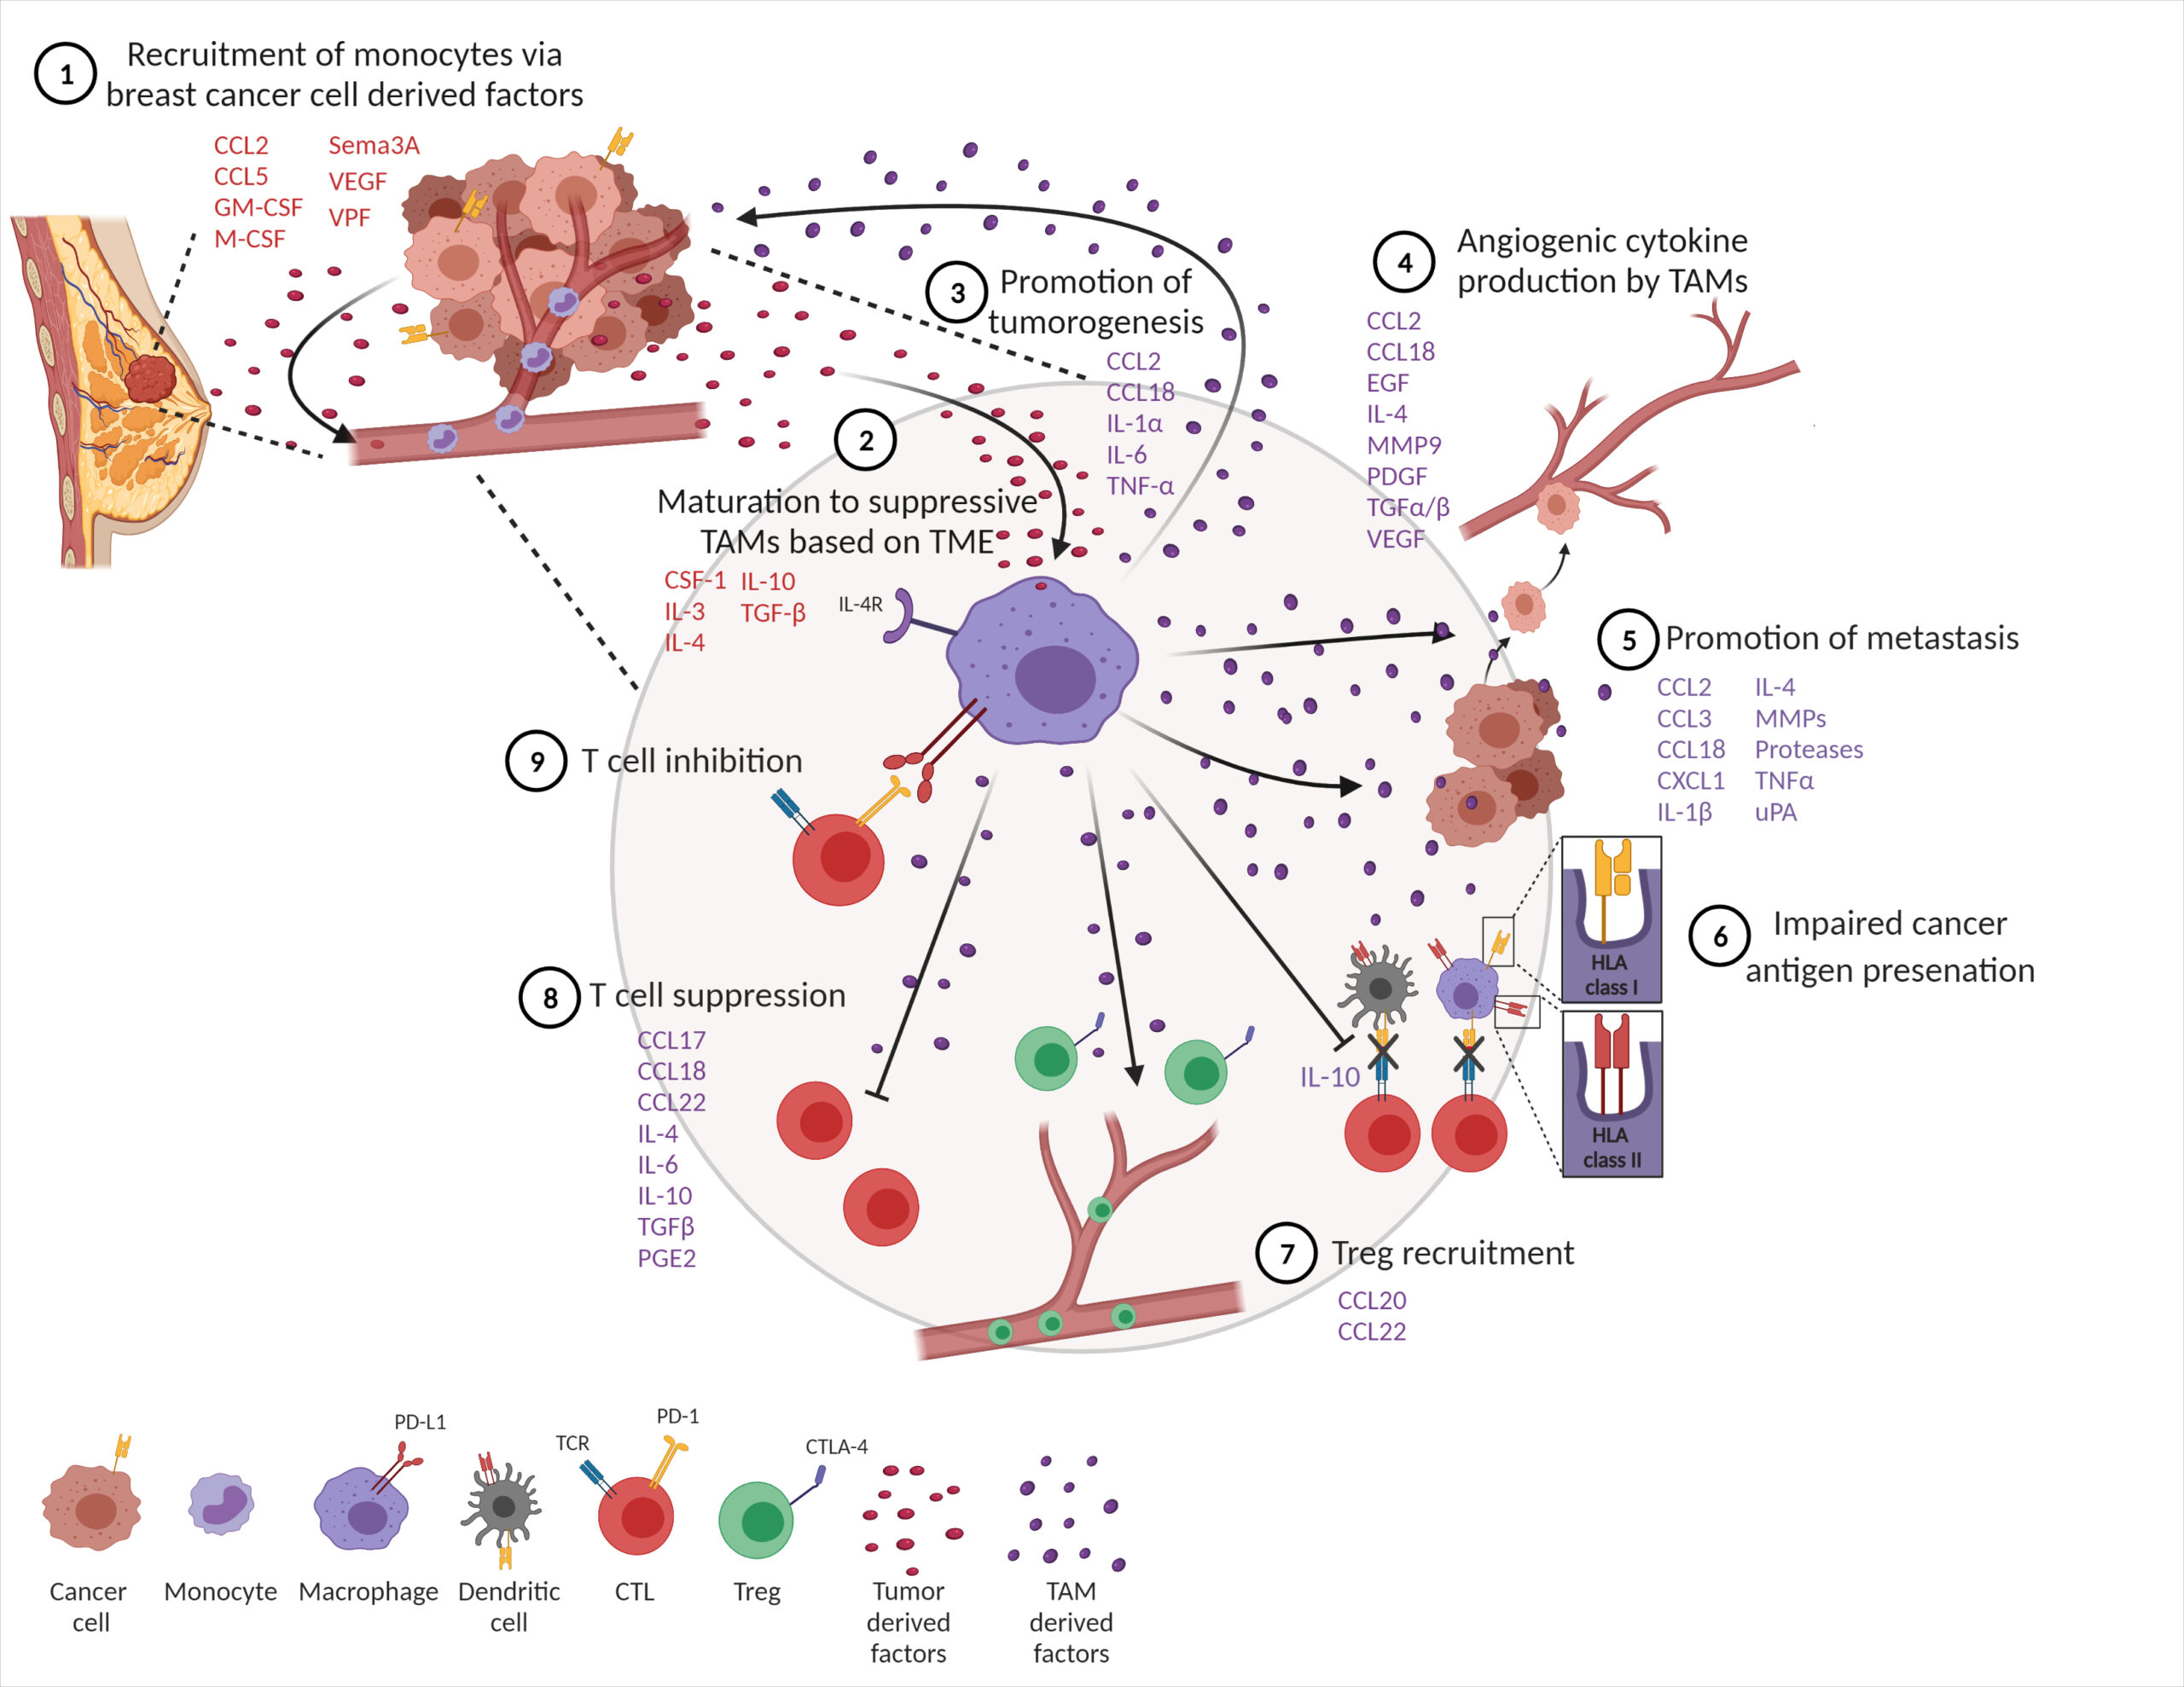 Congratulations To Dr. Anita Mehta And The Guerriero Lab On Their Recent Review Of Macrophage Biology And Mechanisms Of Immune Suppression In Breast Cancer That Was Published In Frontiers Immunology